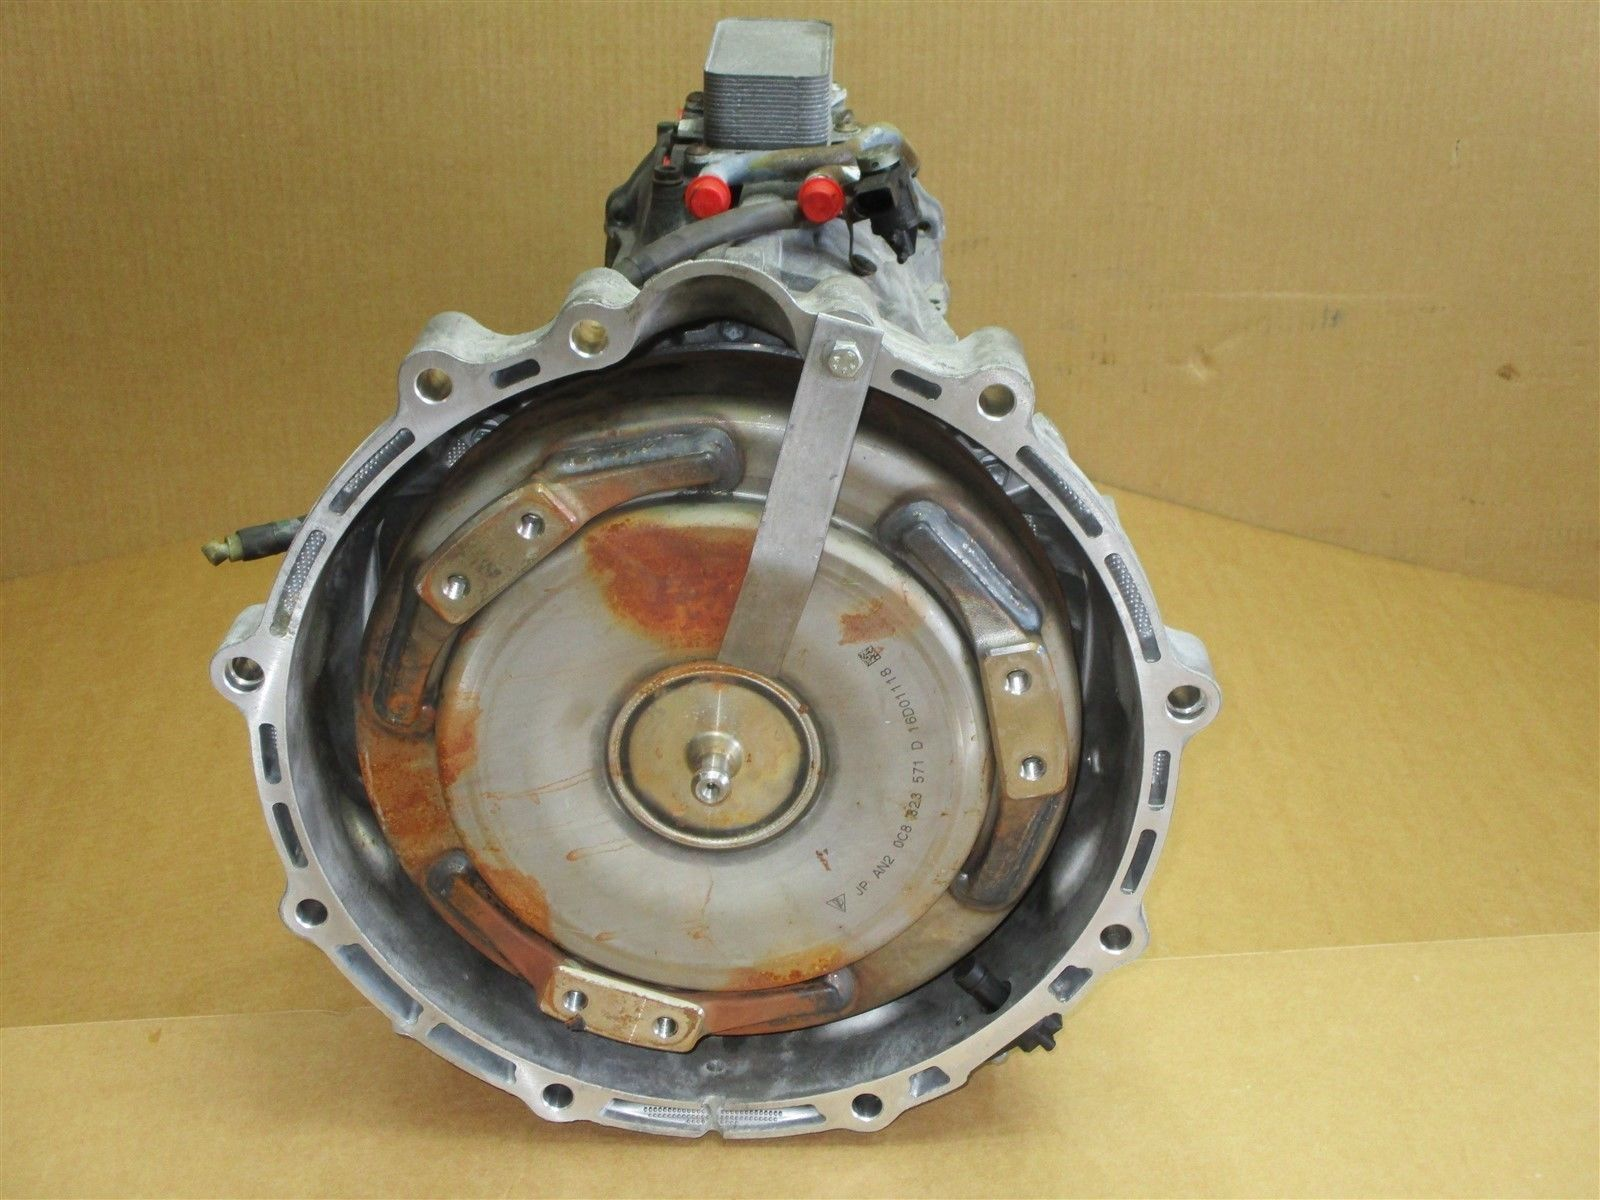 17 Cayenne Turbo AWD Porsche 958 AUTOMATIC TRANSMISSION NLD 0CD300037R 9,356